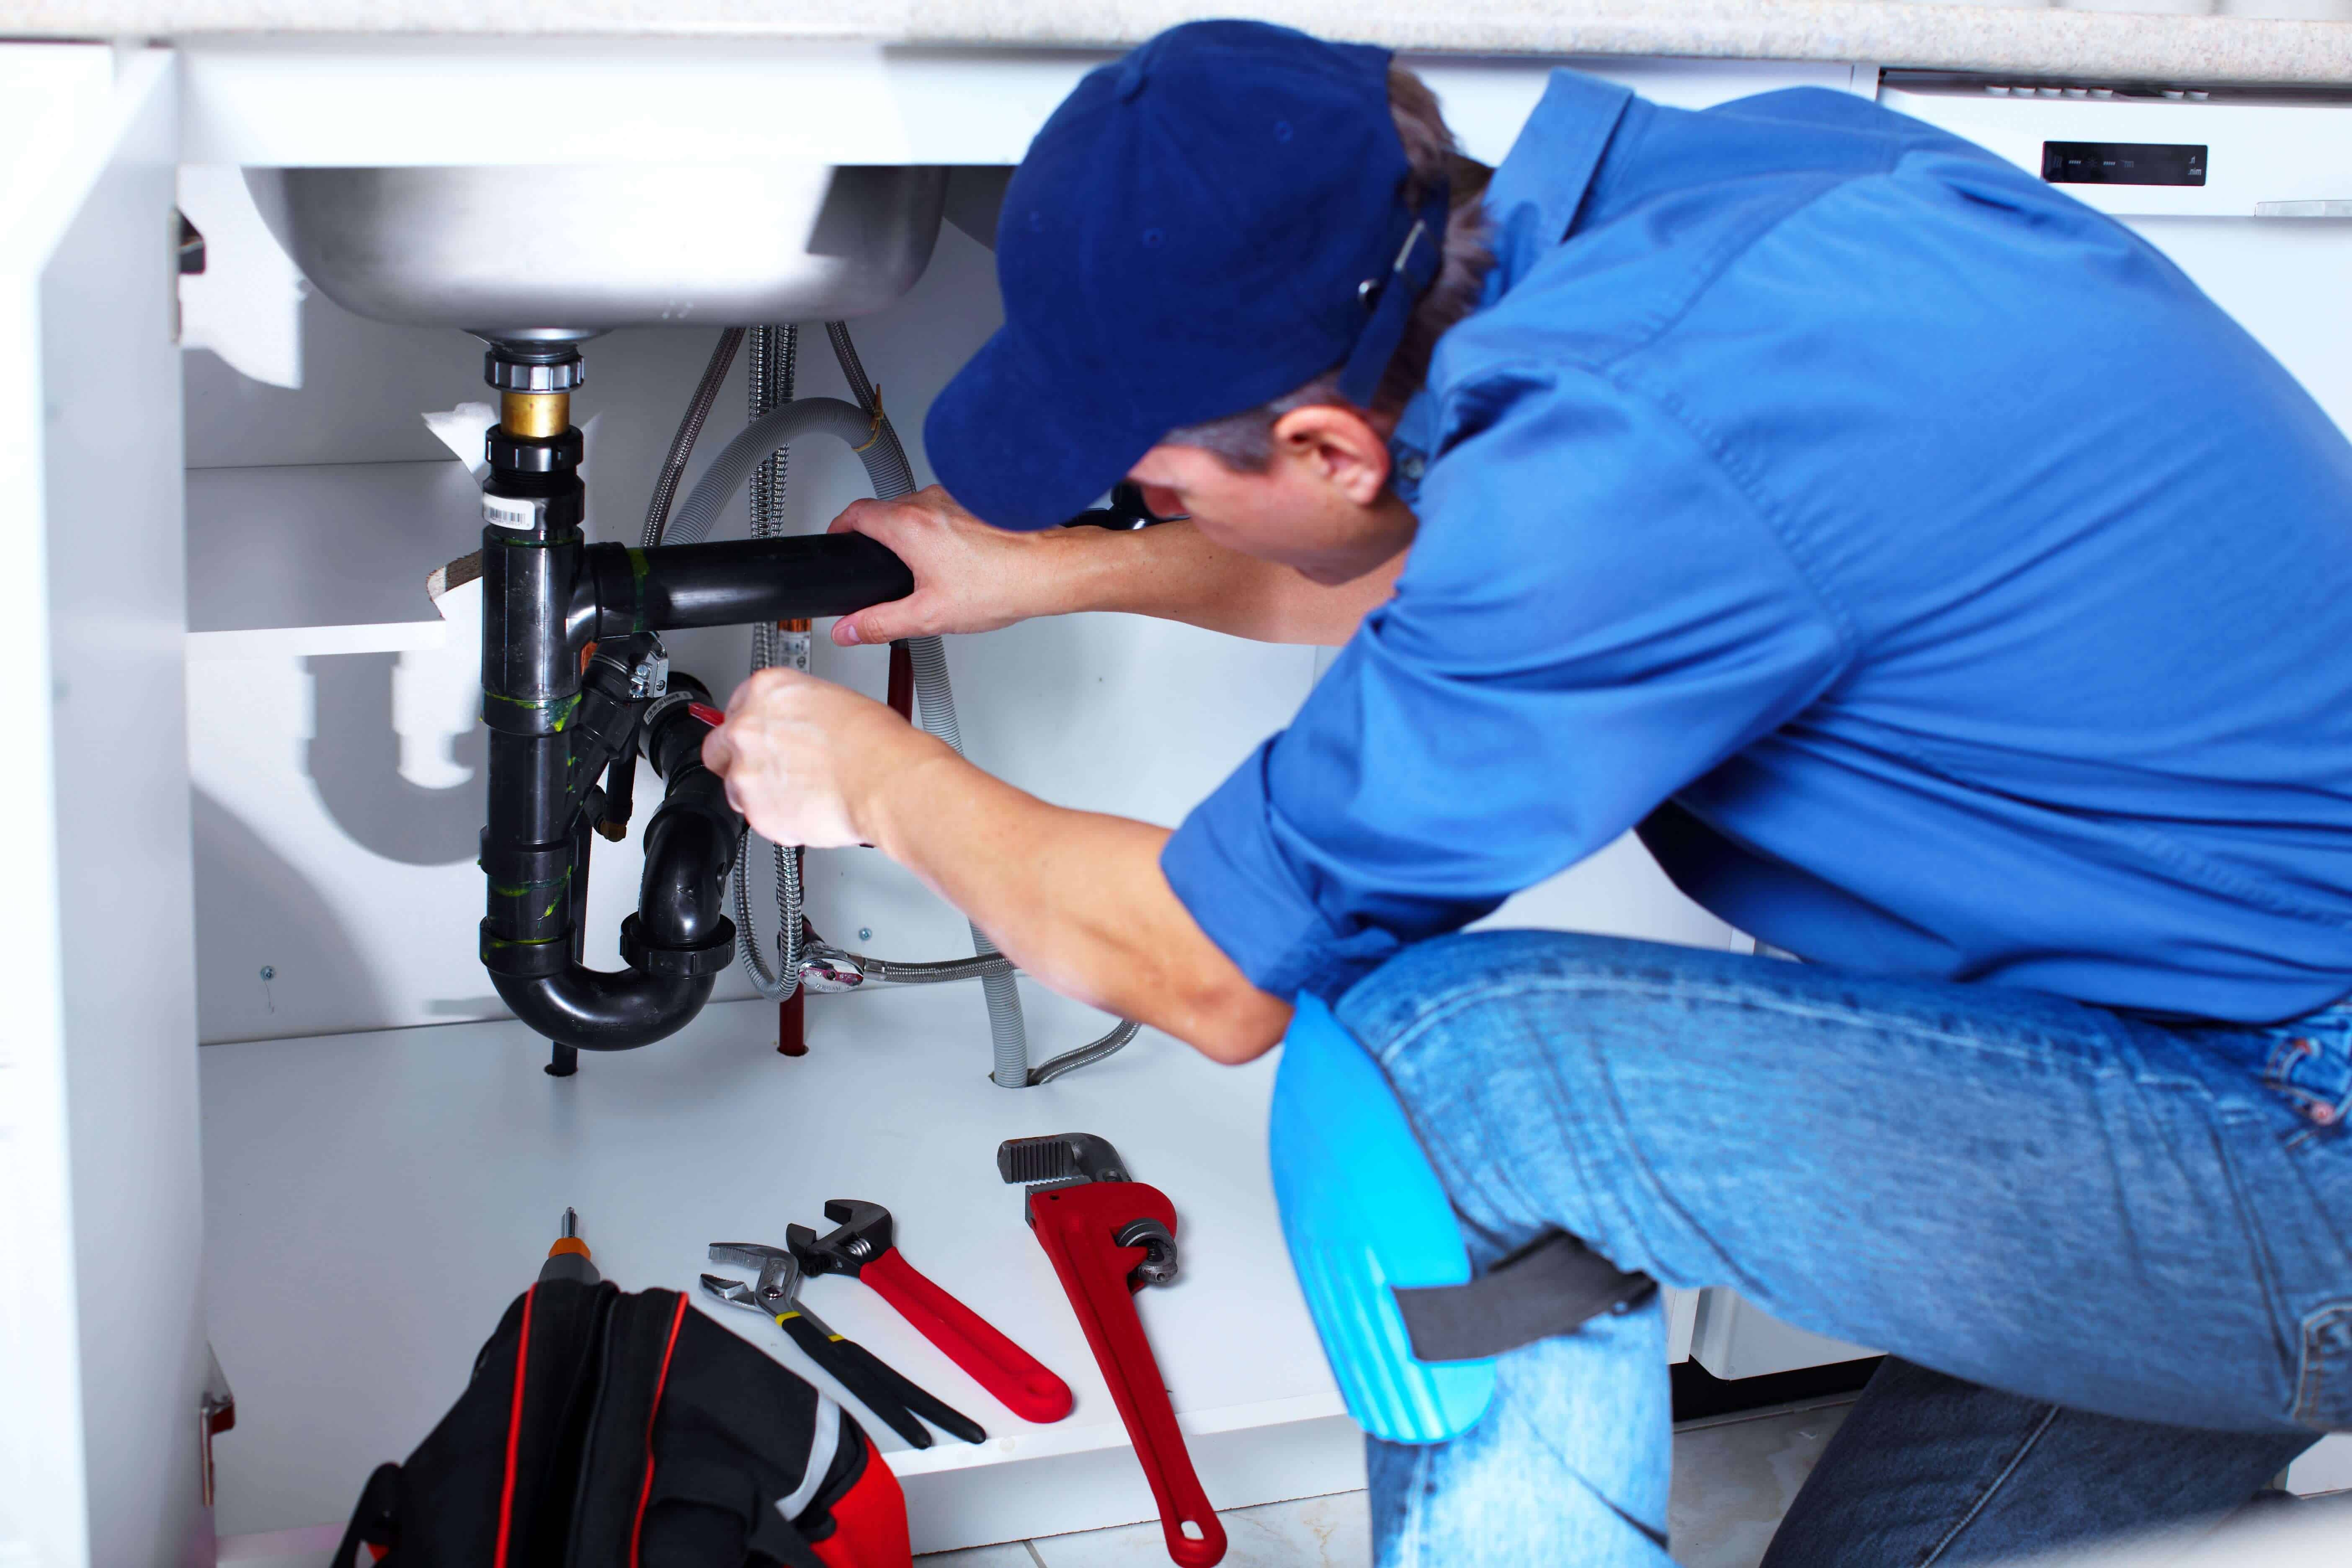 Pictured: A plumber fixing pipes for a sink. We have experts available to fix plumbing issues you might have.